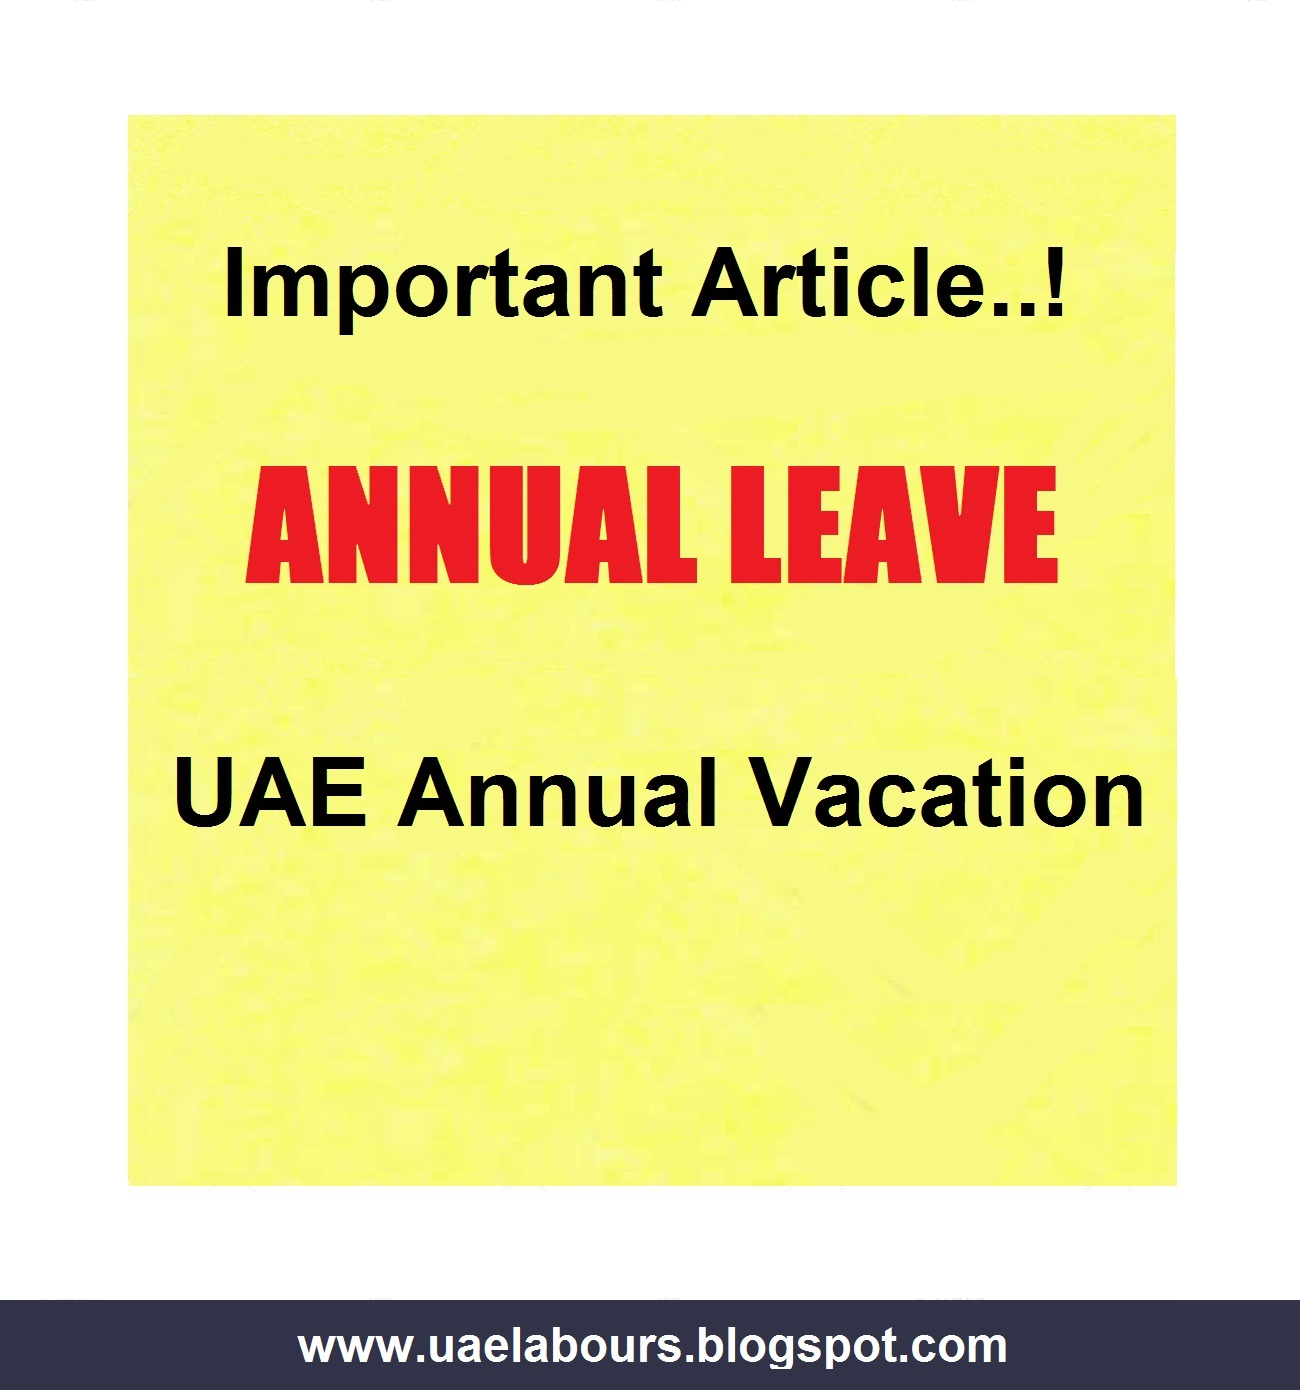 Uae annual leave and vacation labour law uae labours spiritdancerdesigns Choice Image